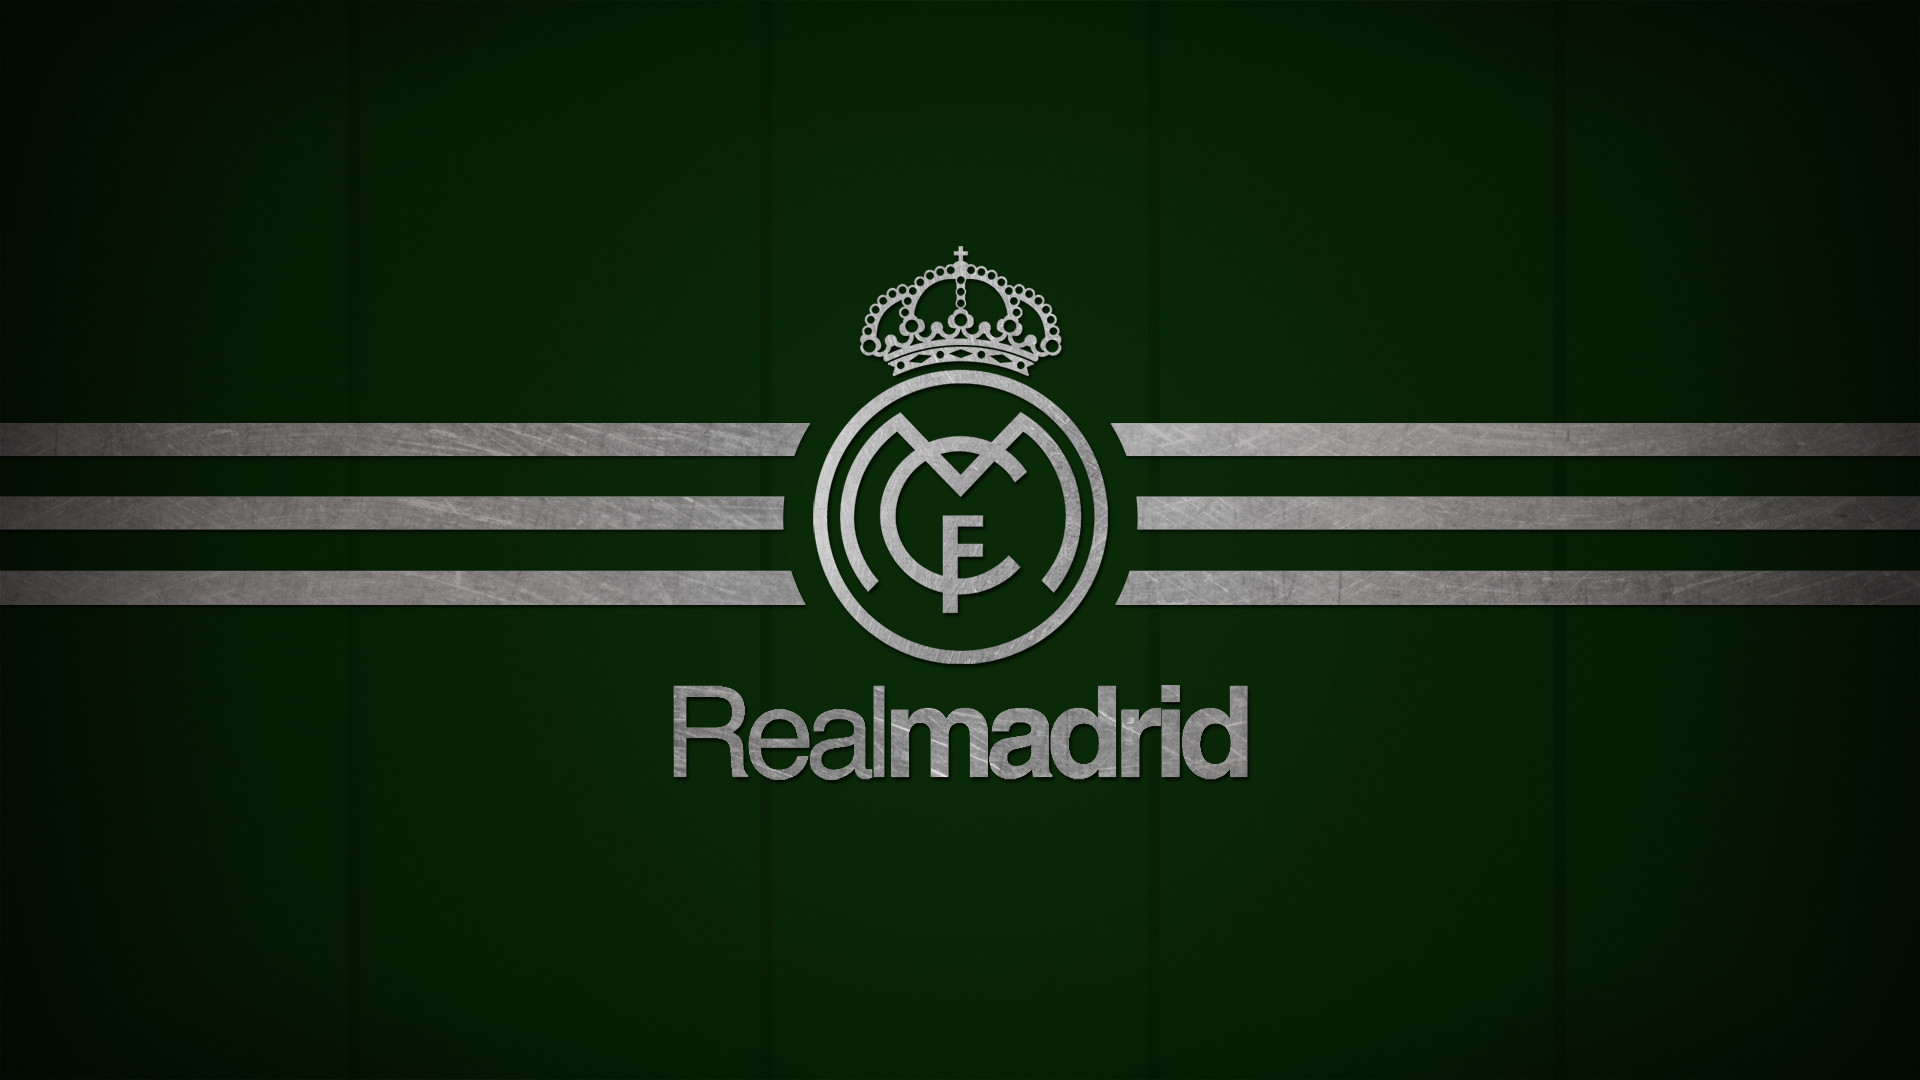 1920x1080 wallpaper .wiki-real_madrid_wallpapers__hd_35_green_background-PIC-WPB00744